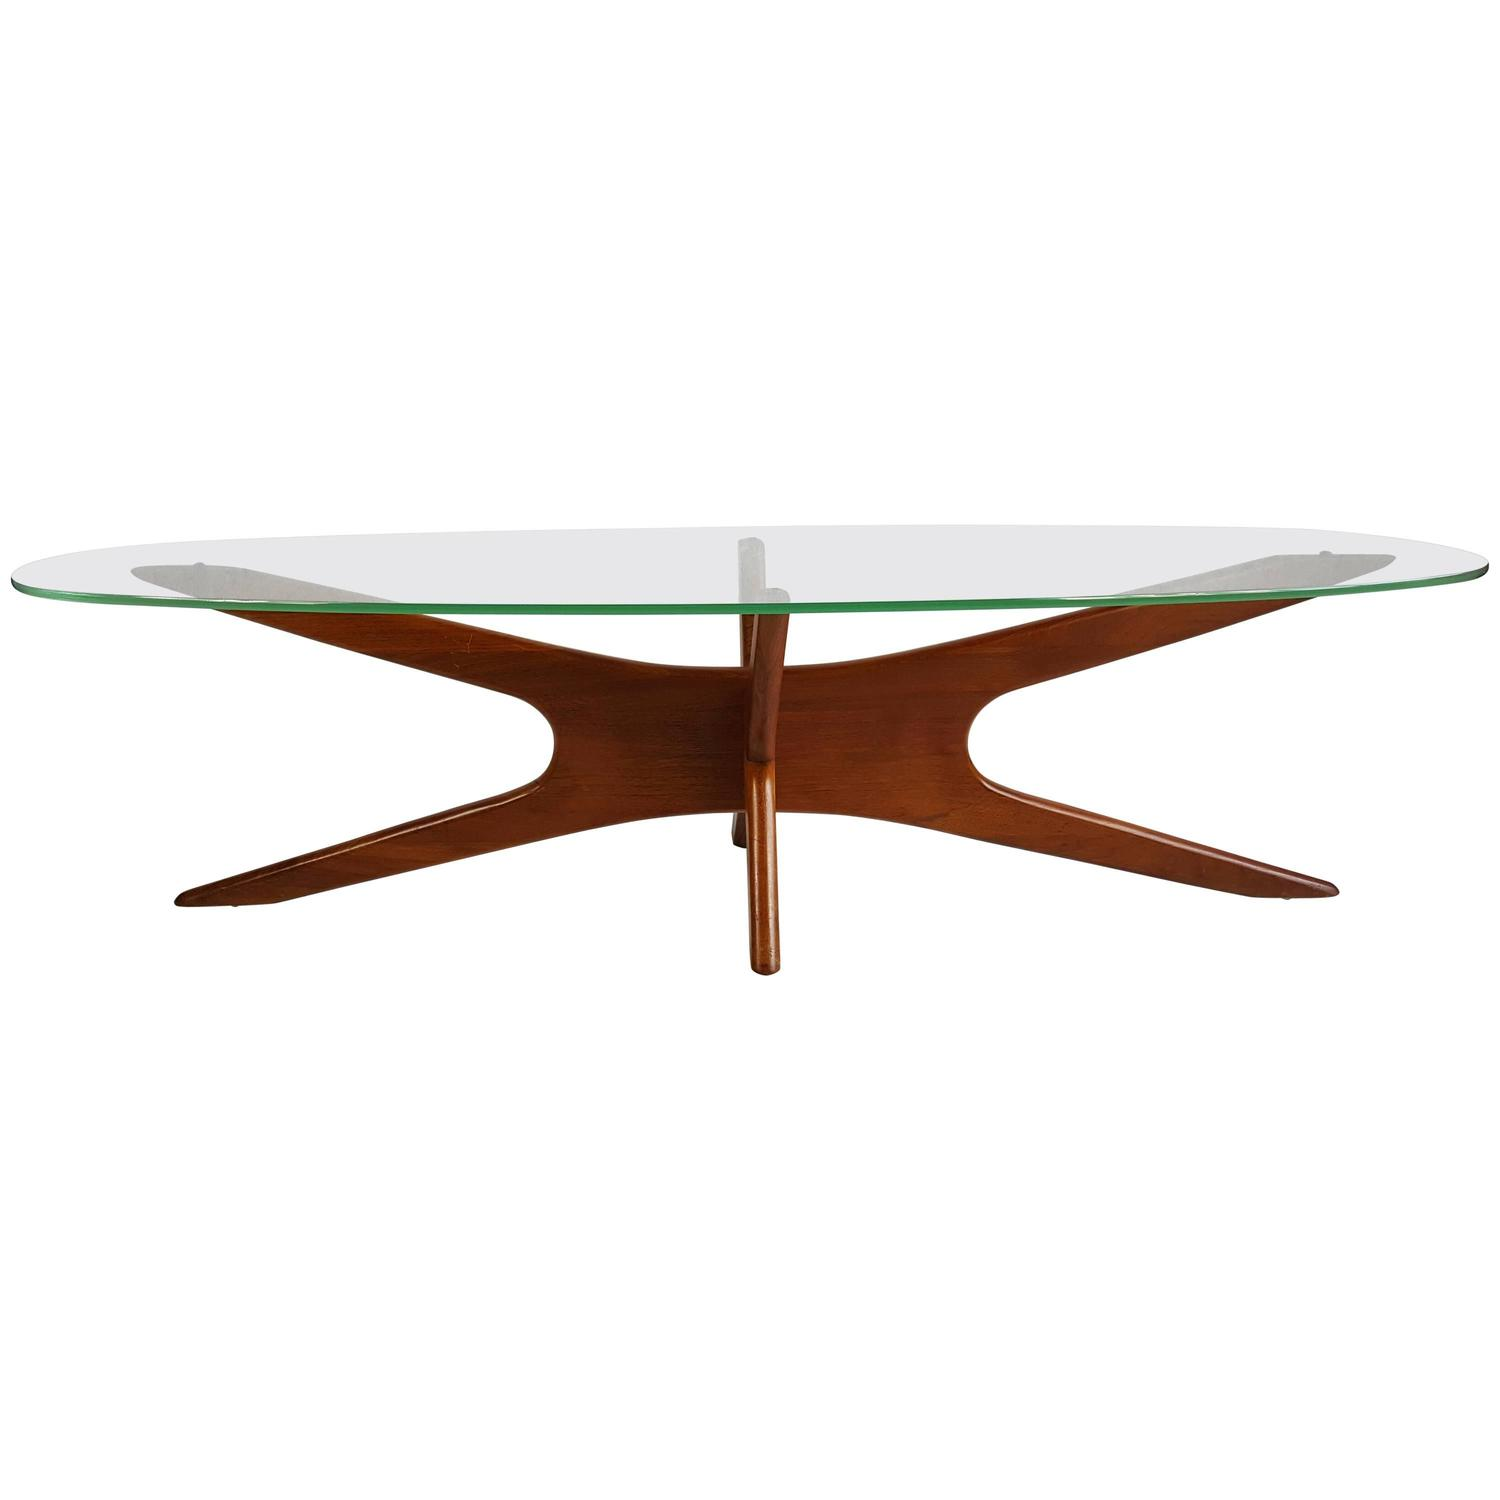 Adrian Pearsall Boomerang Coffee Table Adrian Pearsall Freeform